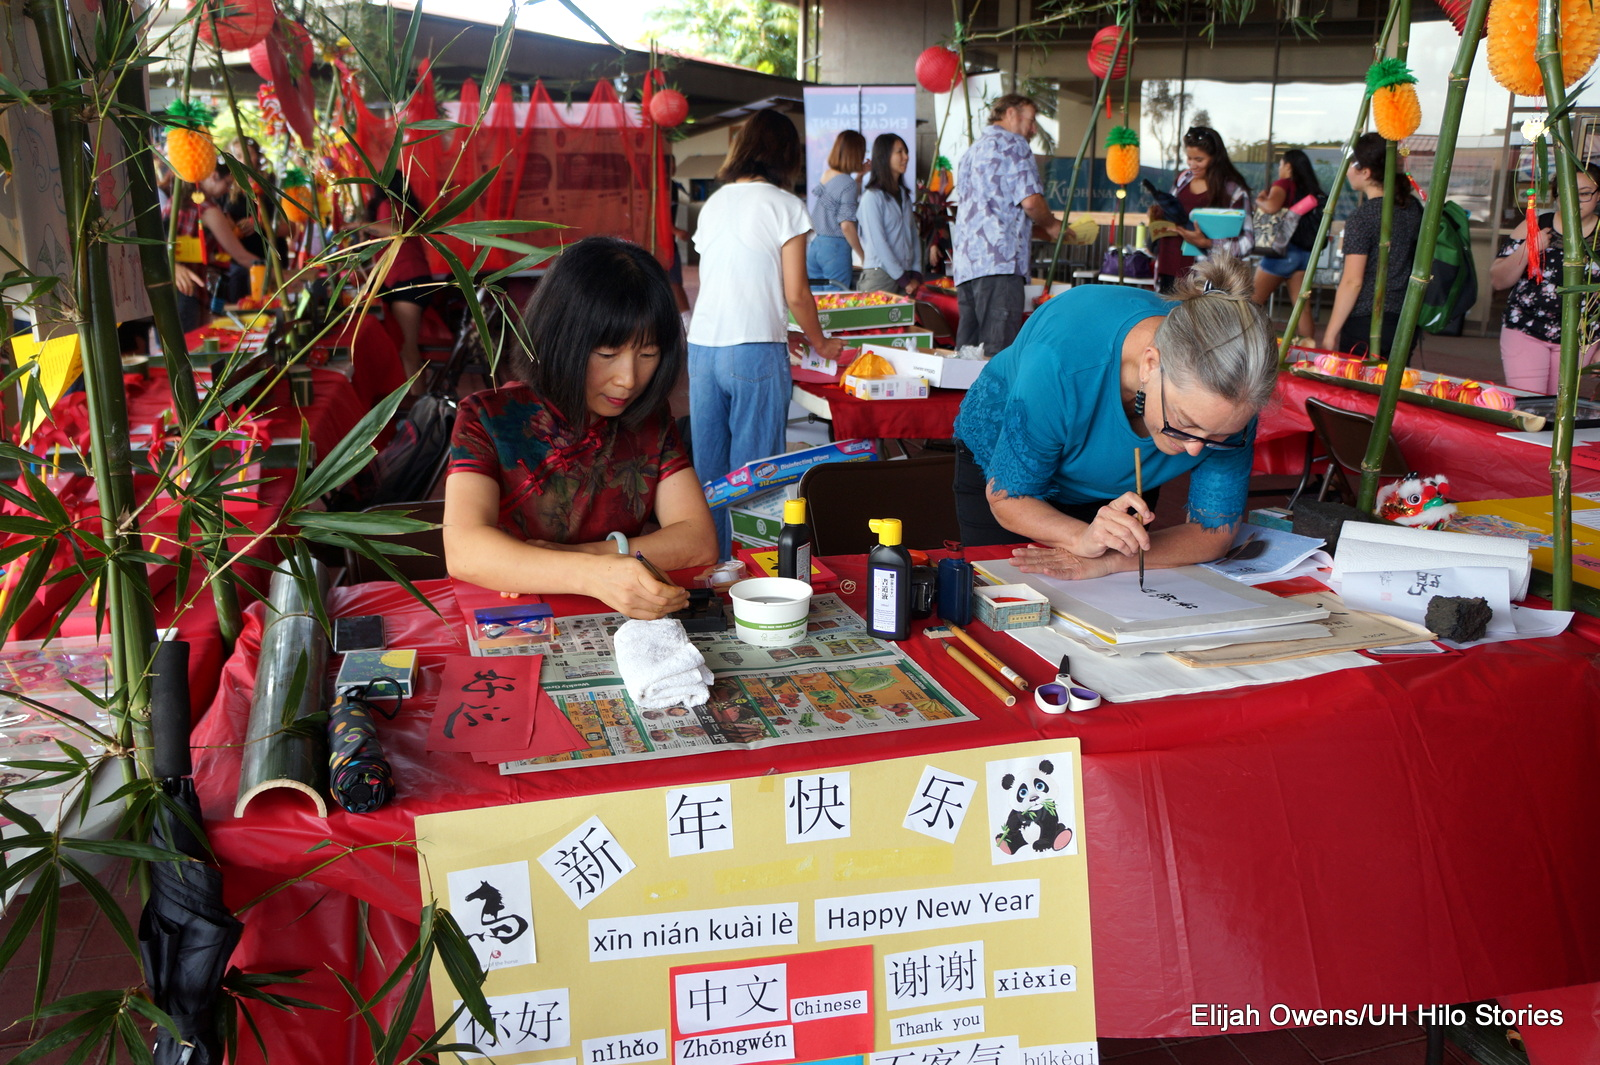 Two women at table doing calligraphy.